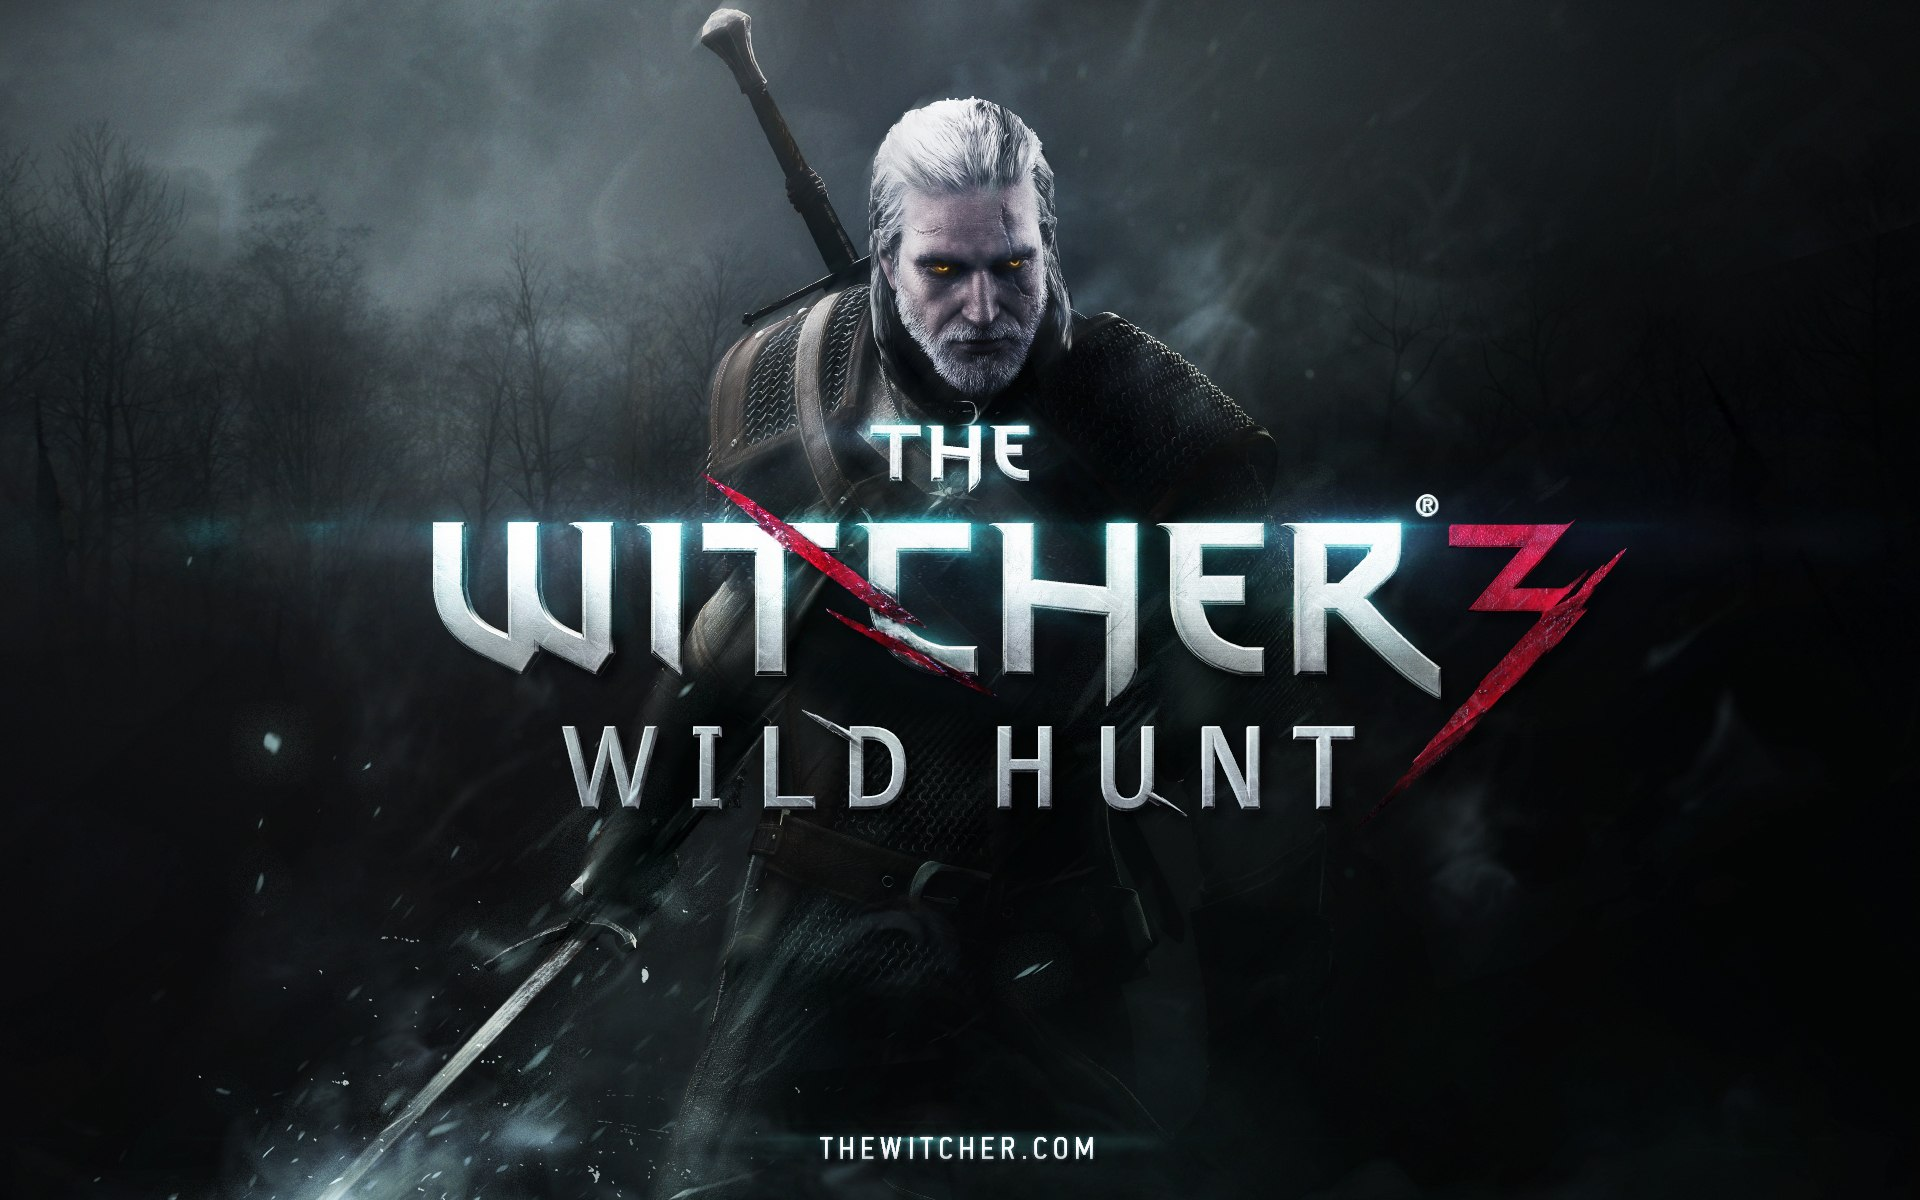 The Witcher 3 Wild Hunt Patch 1.05 veröffentlicht